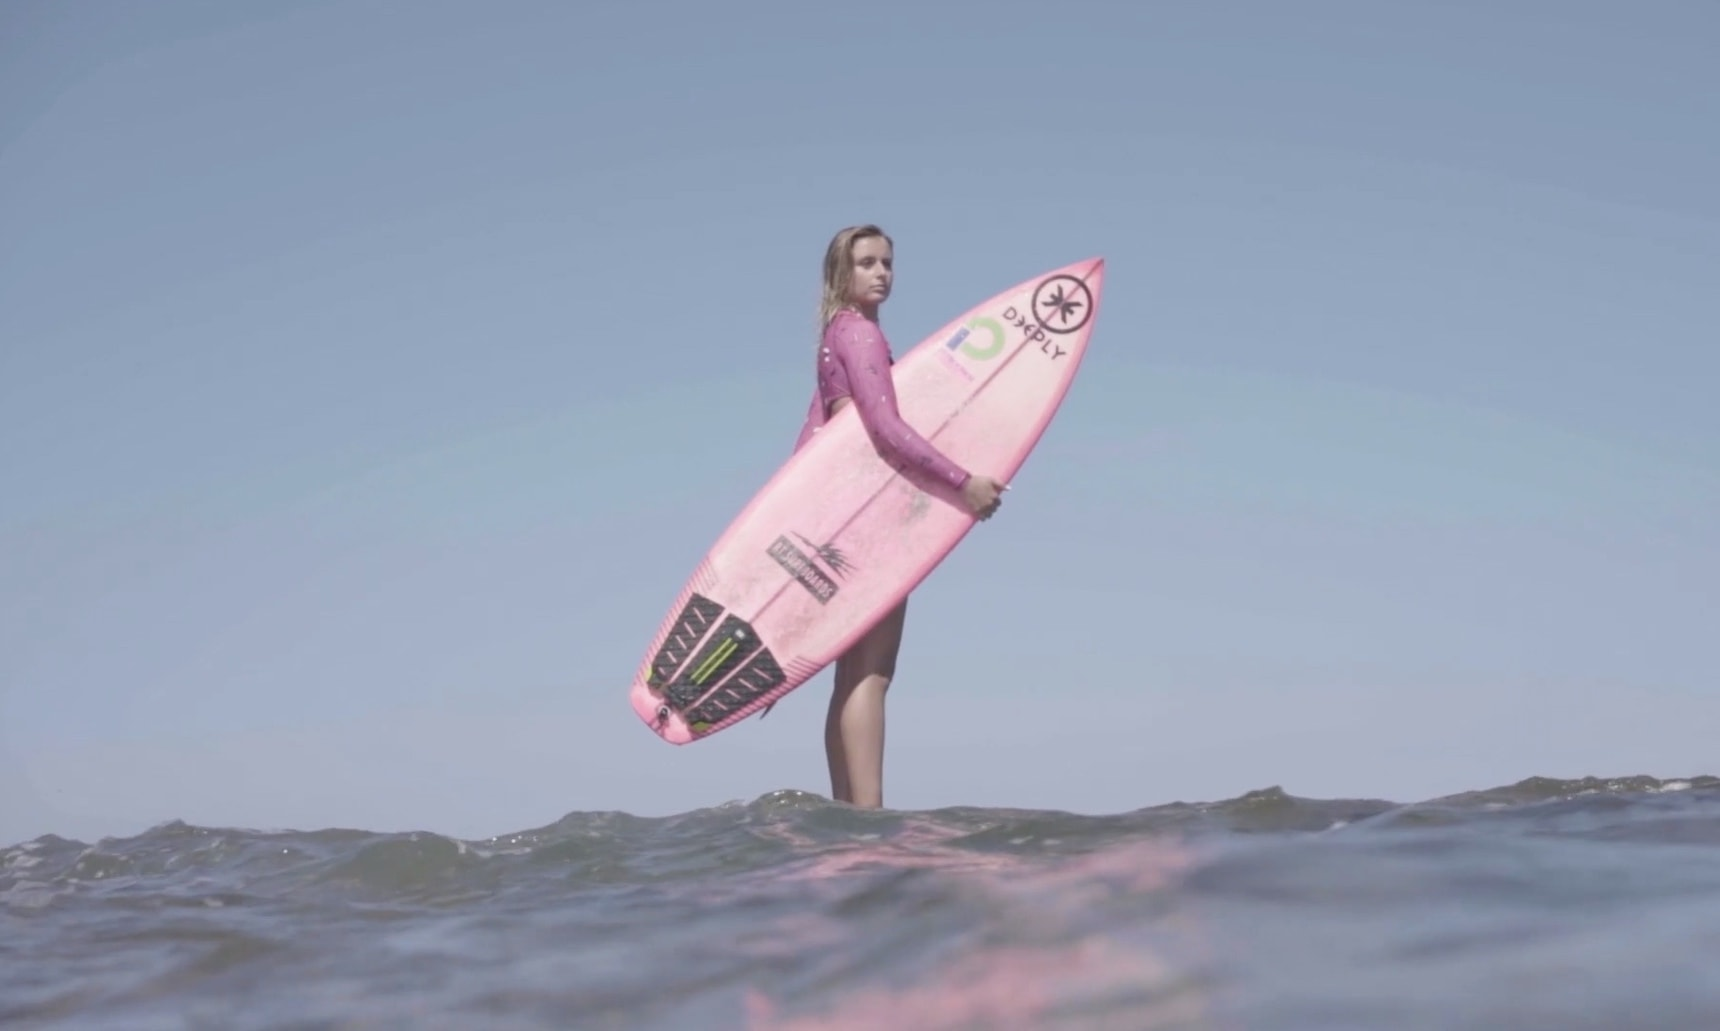 Uhaina Joly standing in the water holding her surfboard